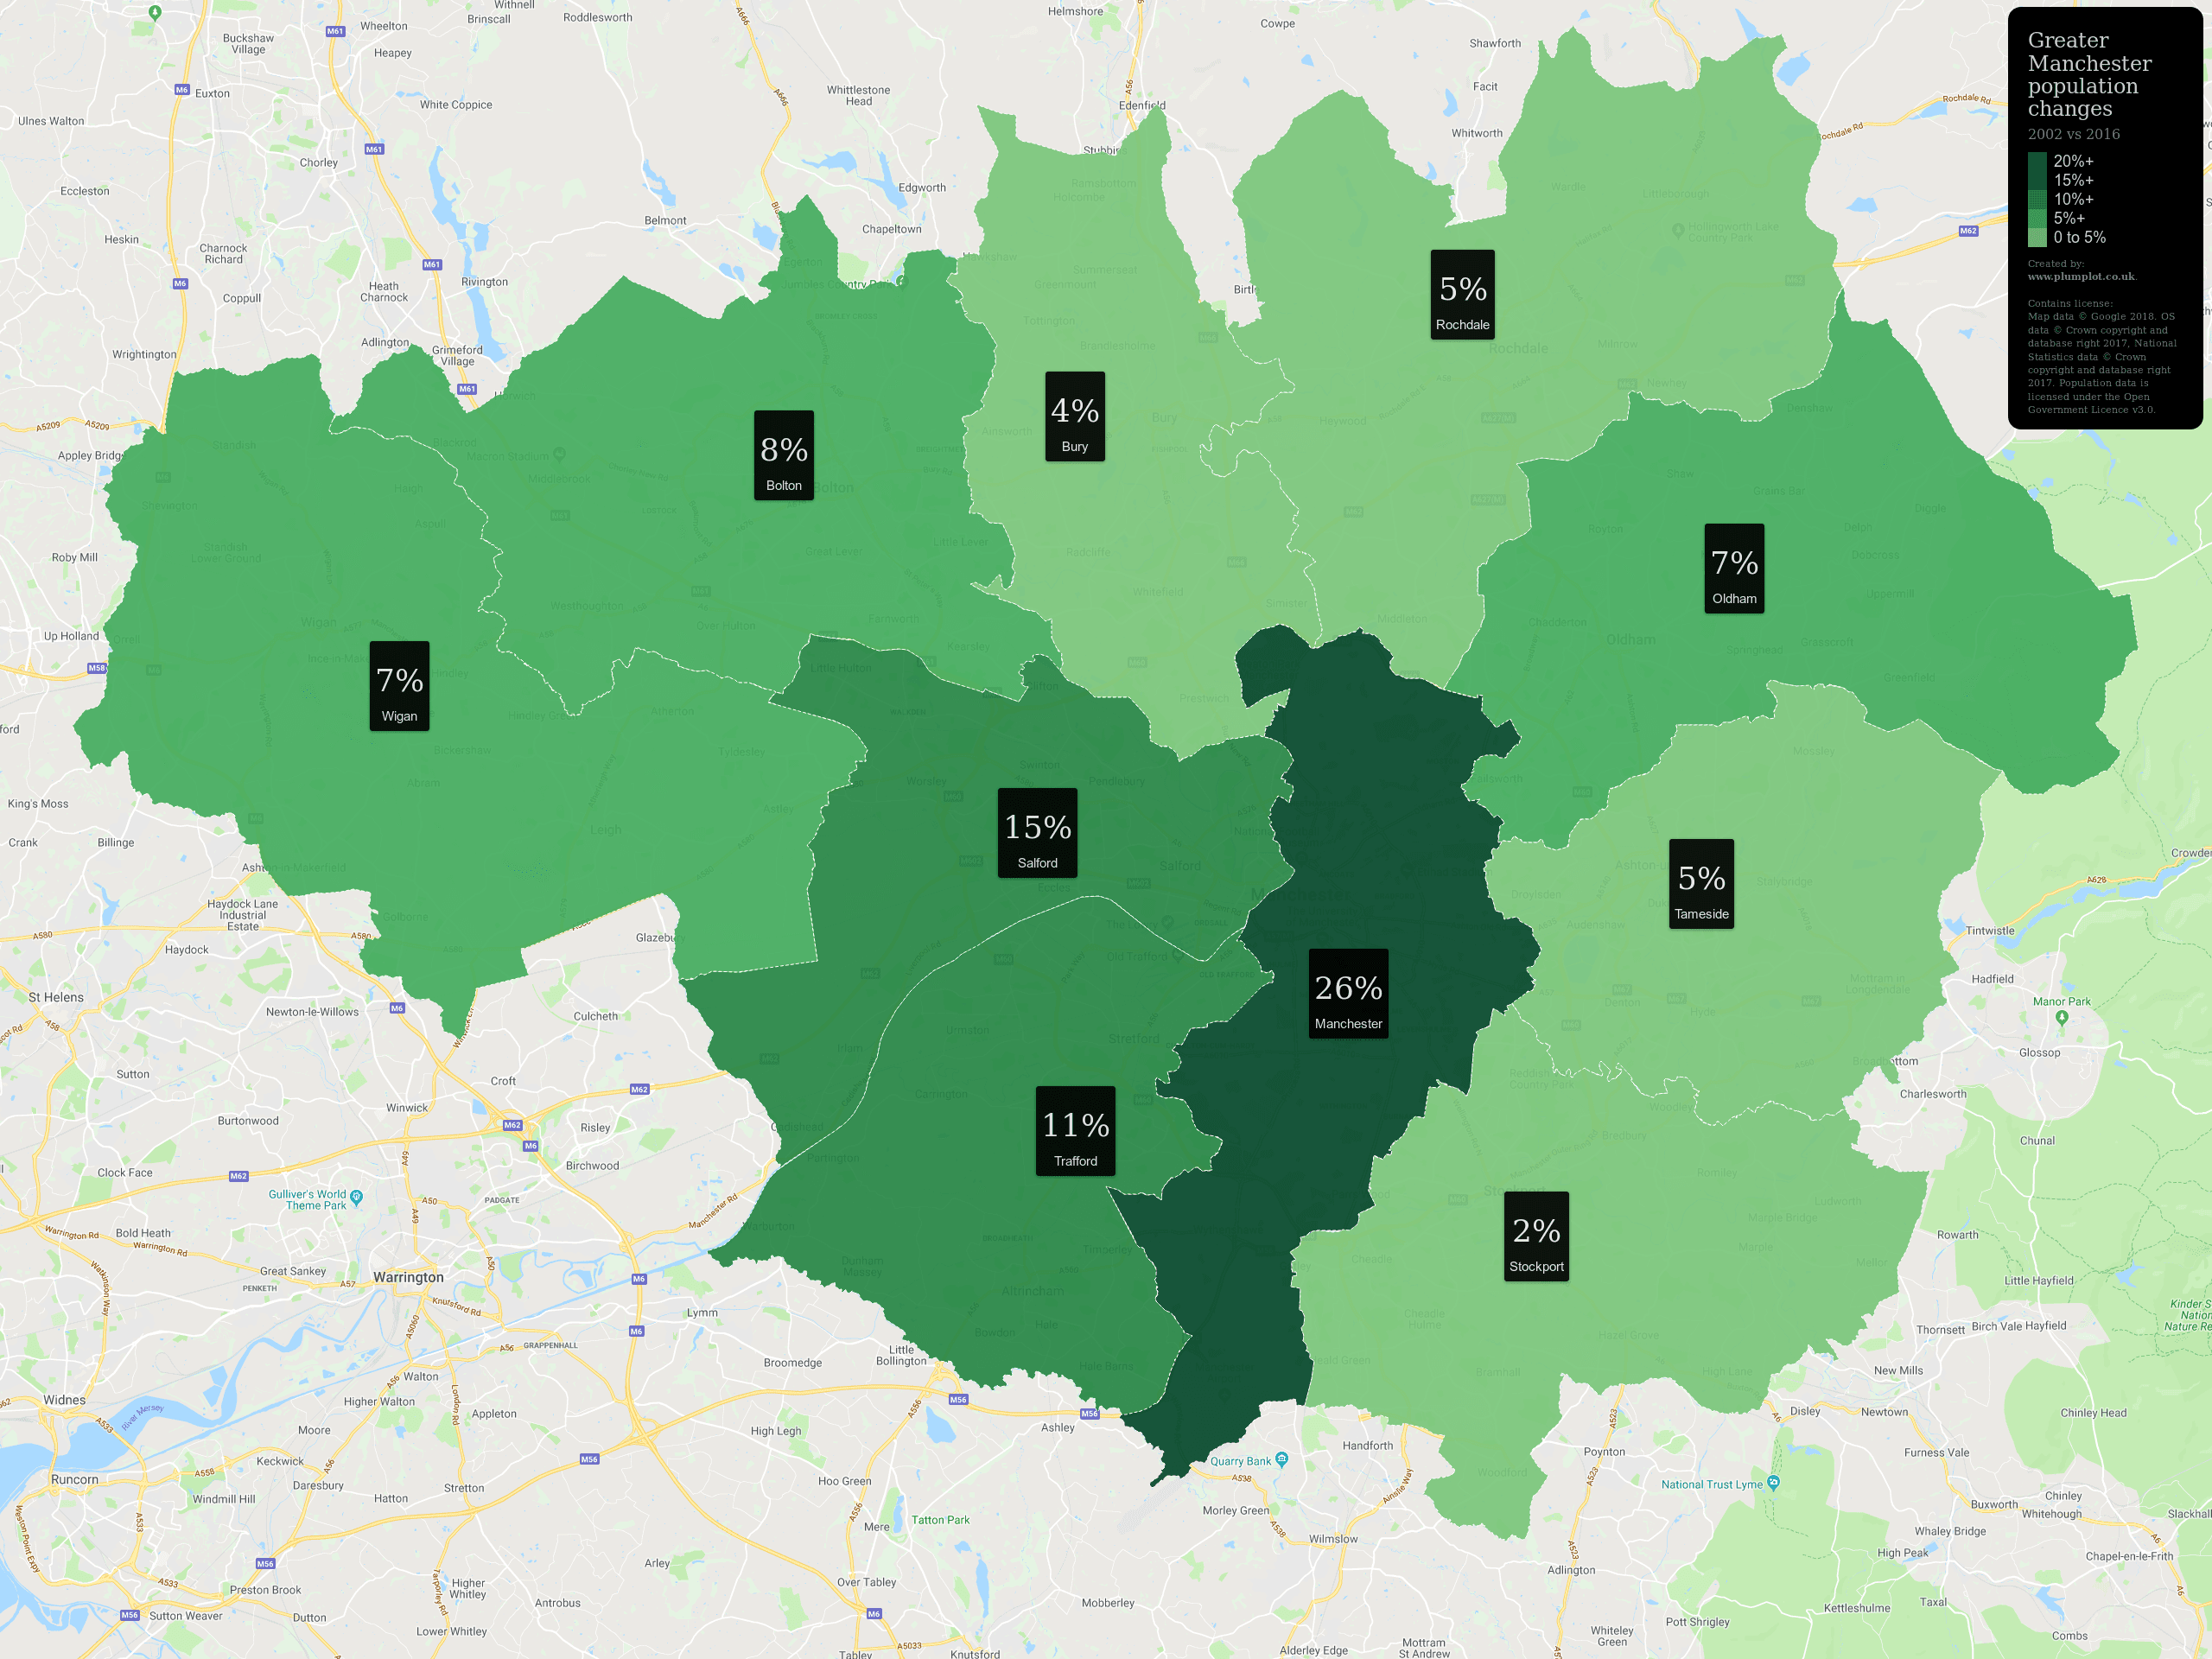 Greater manchester population changes by local authority